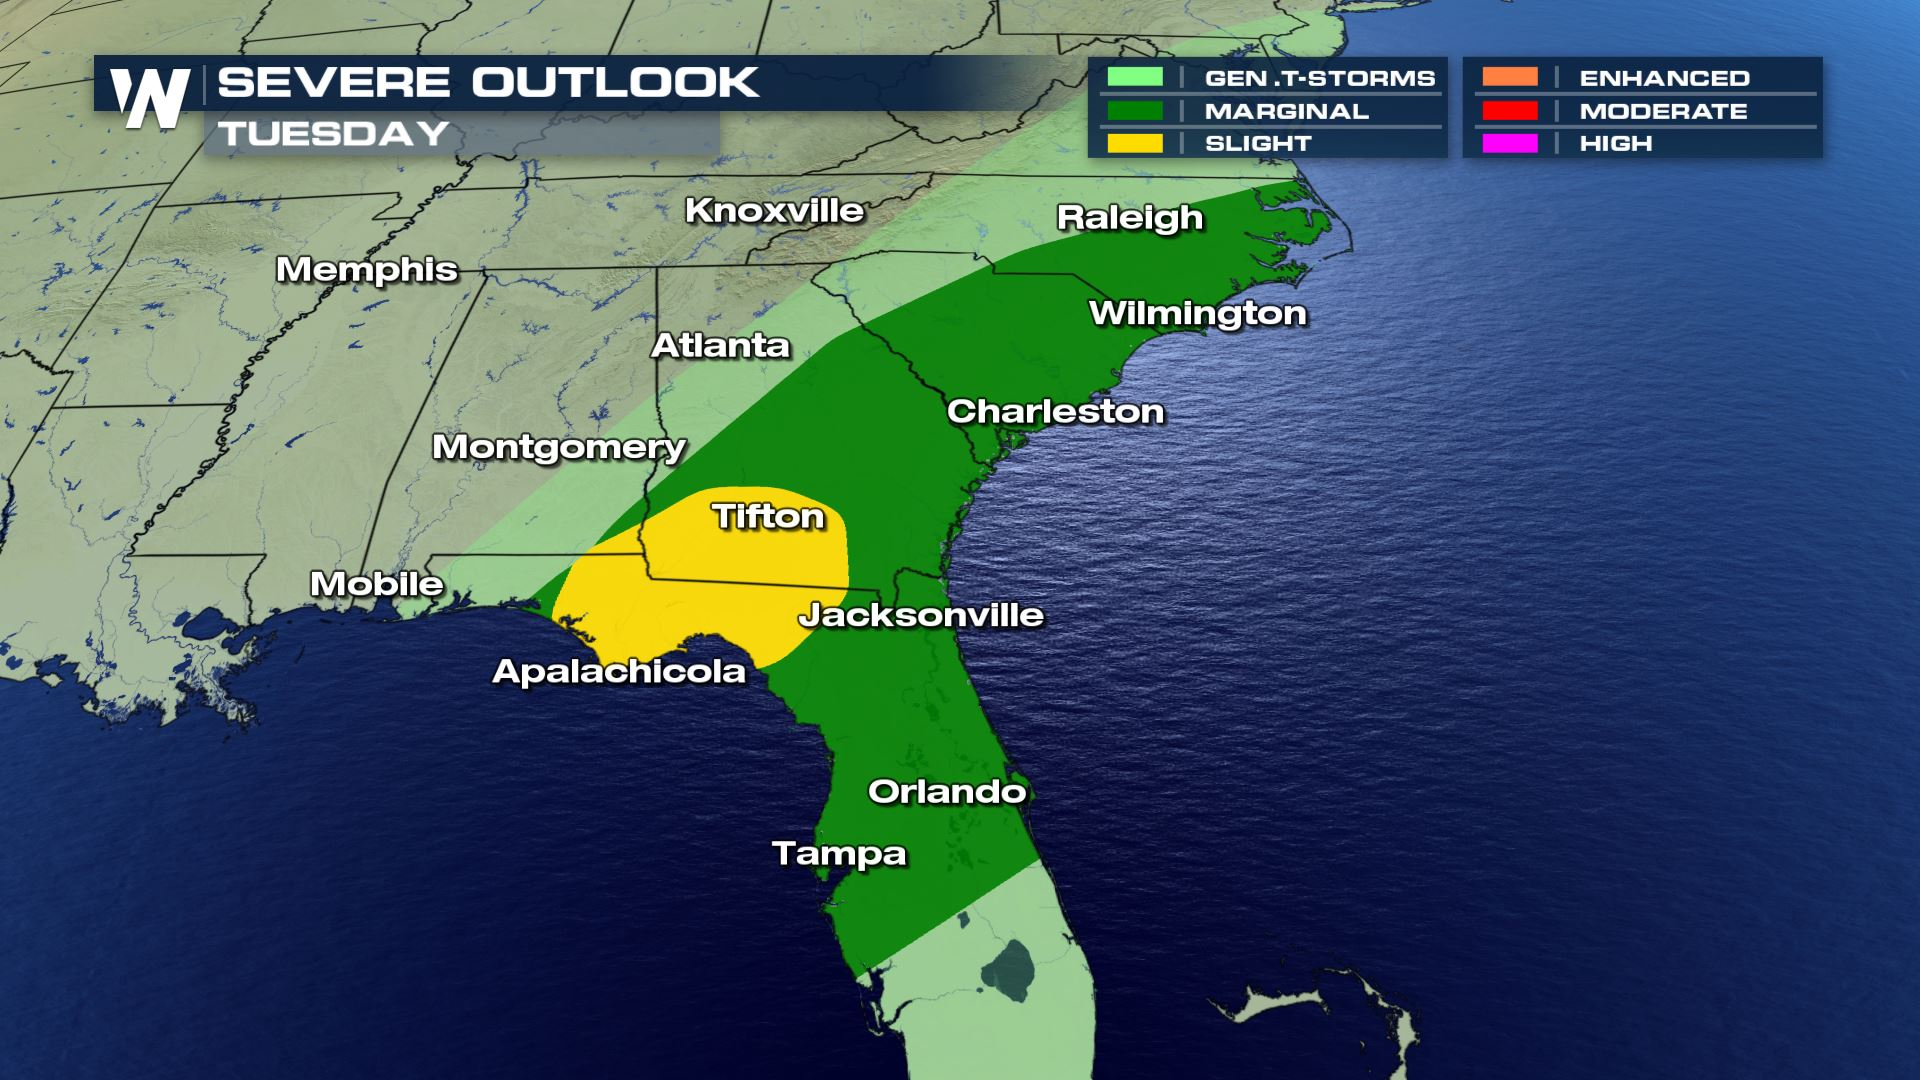 Severe Weather Risk Continues For The Southeast Tuesday